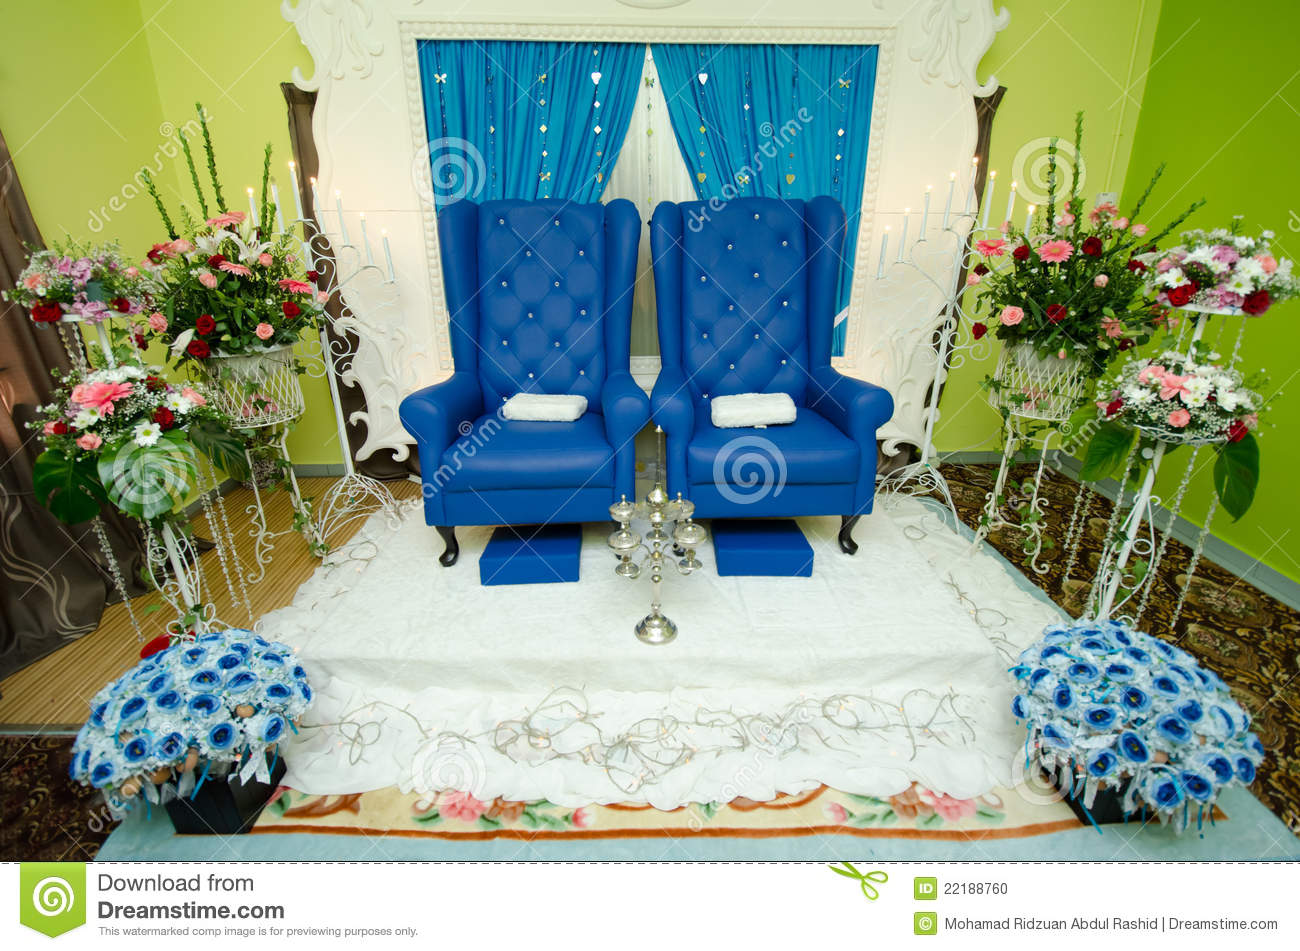 New 691 wedding decoration business plan wedding decoration pattern decoration wedding decoration business plan wedding decoration for the couples seating wedding decoration business junglespirit Image collections